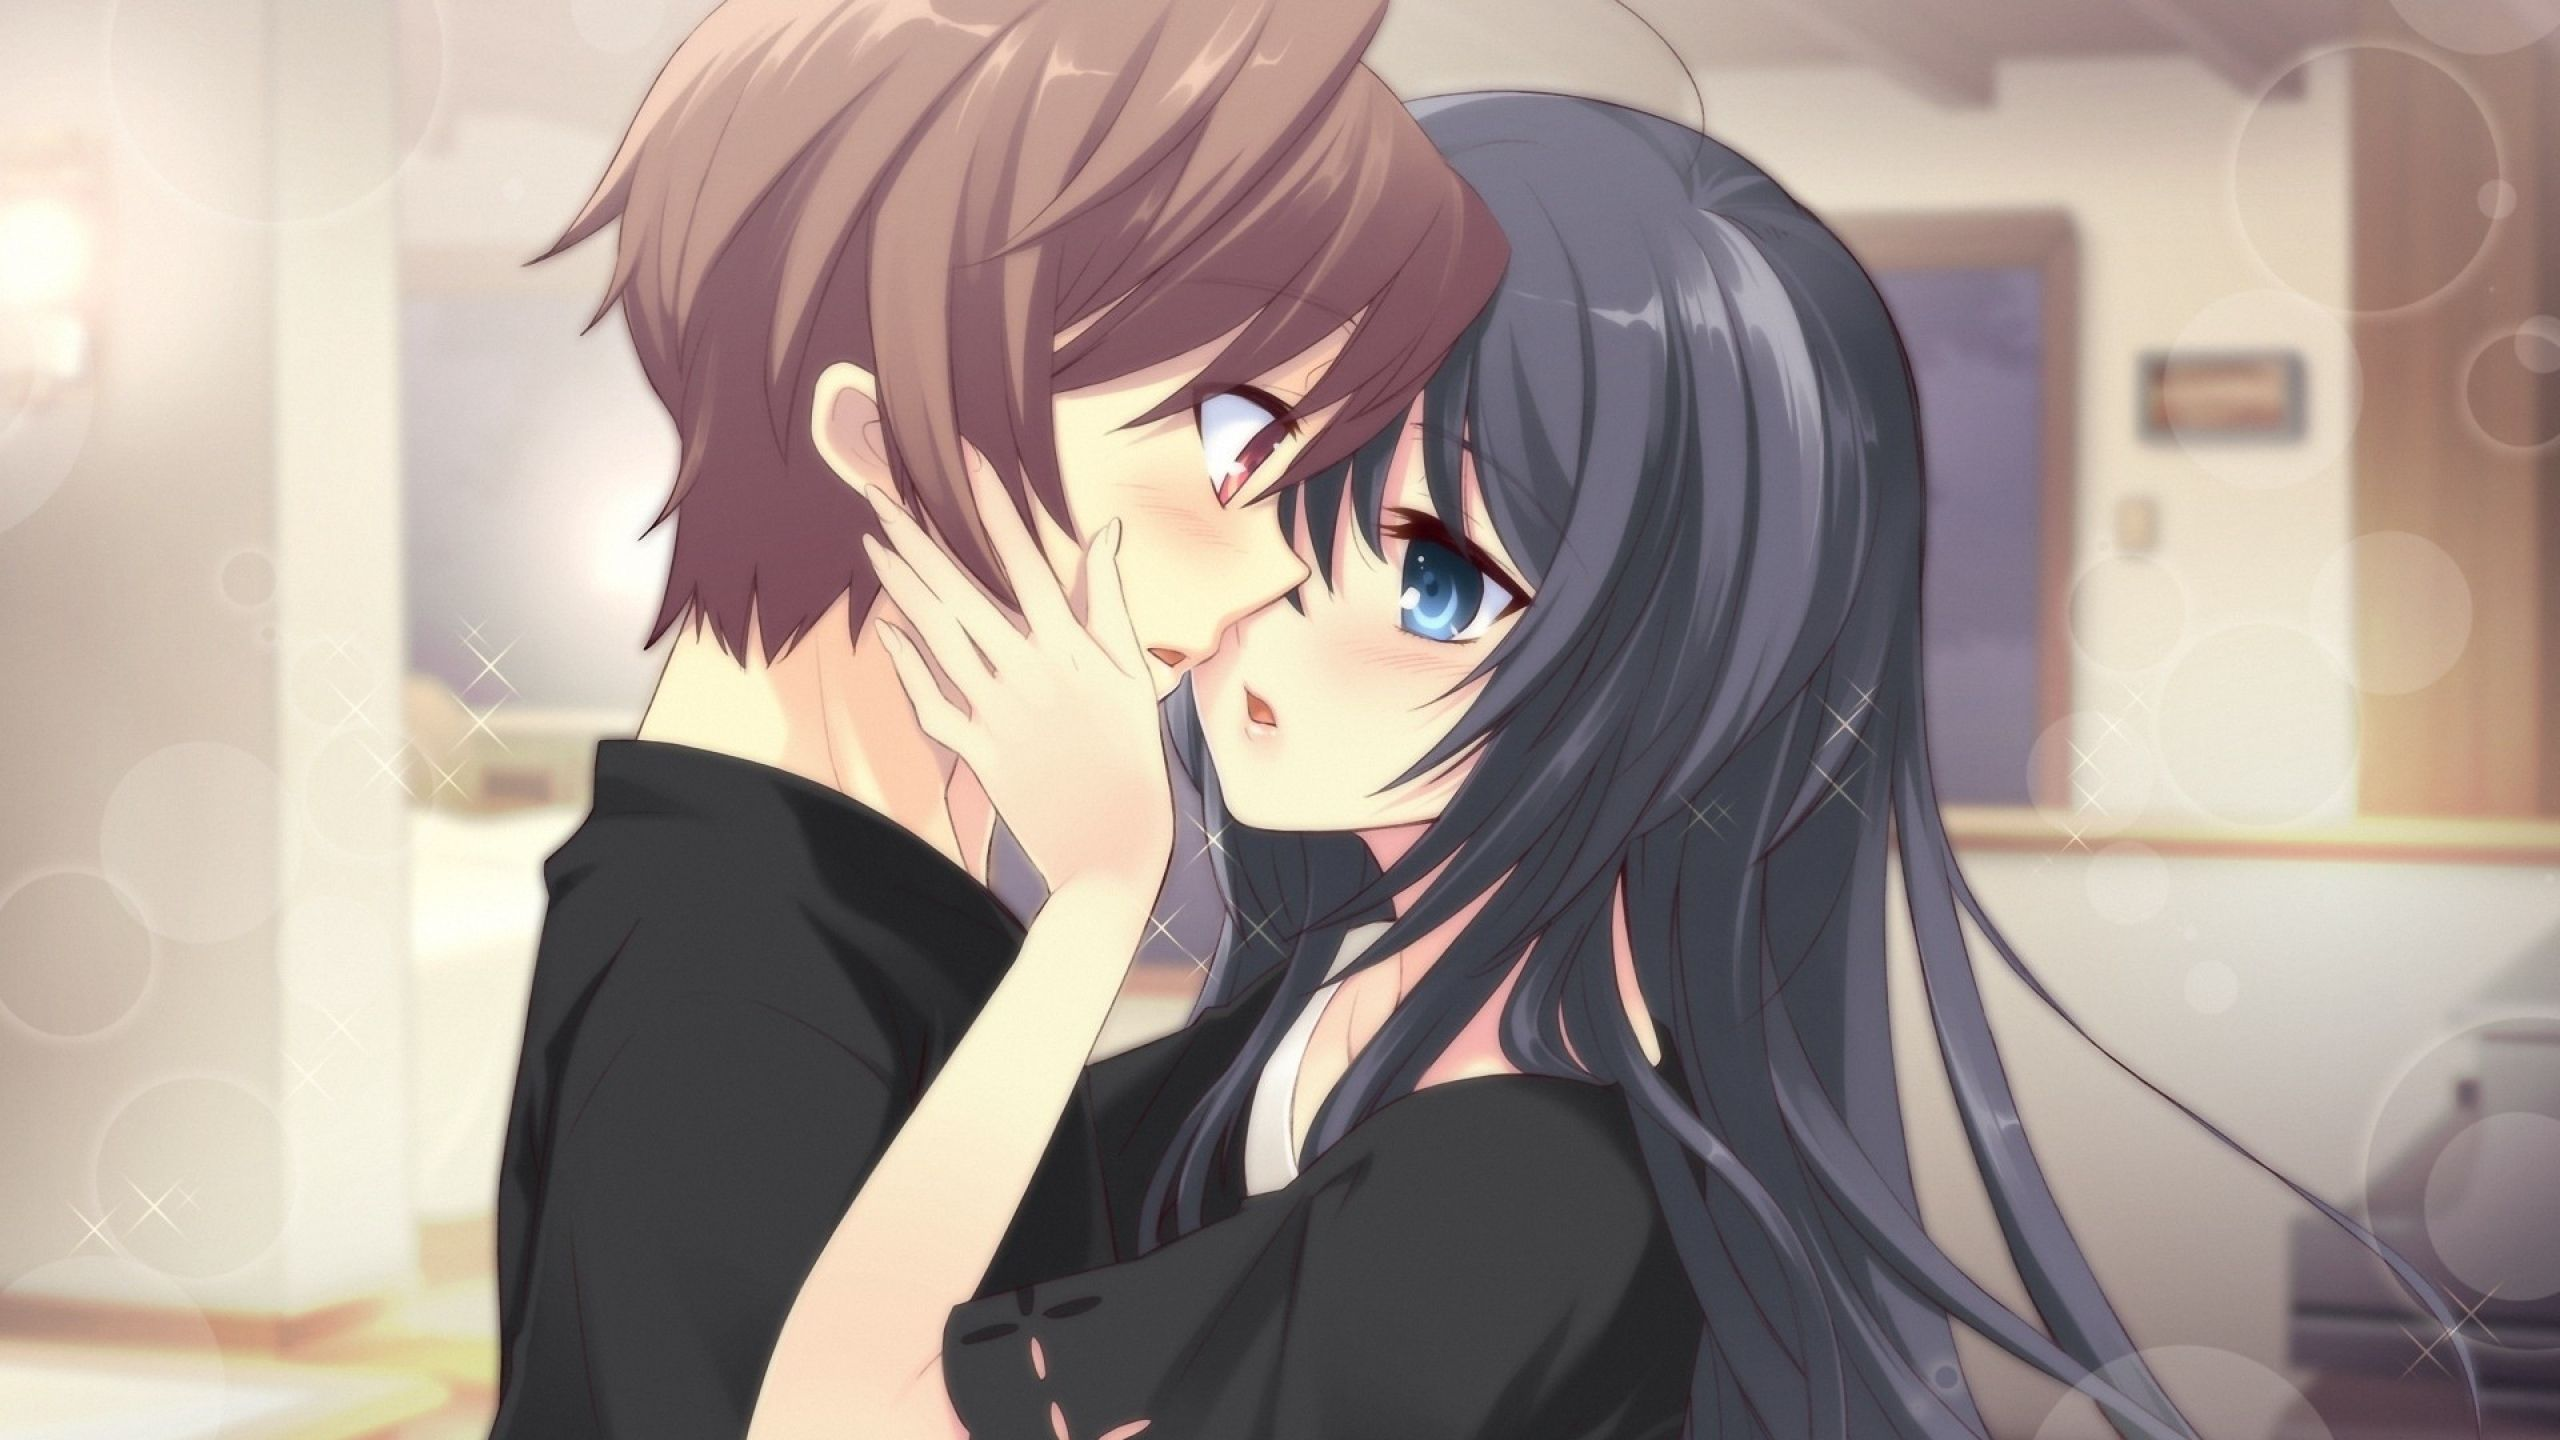 Romantic Couples Anime Wallpapers|Romantic Wallpapers|Chobirdokan